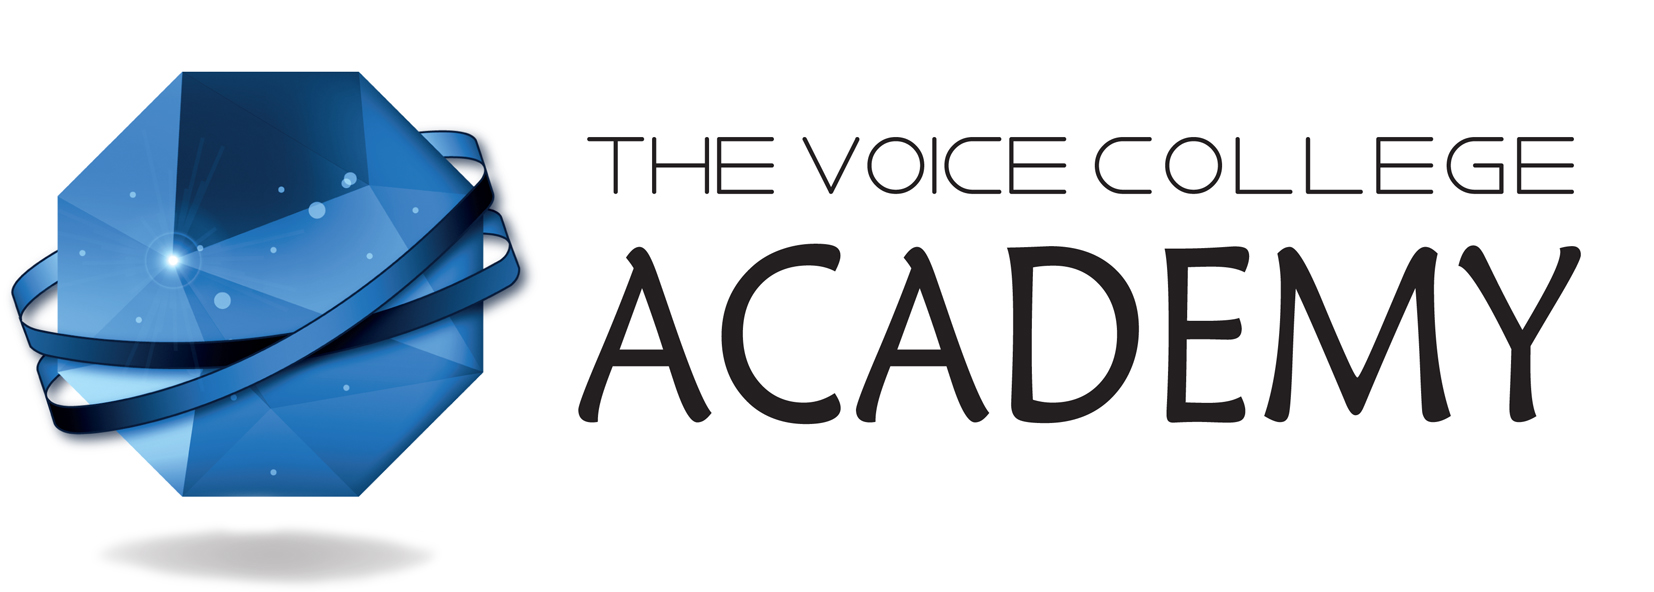 The Voice College